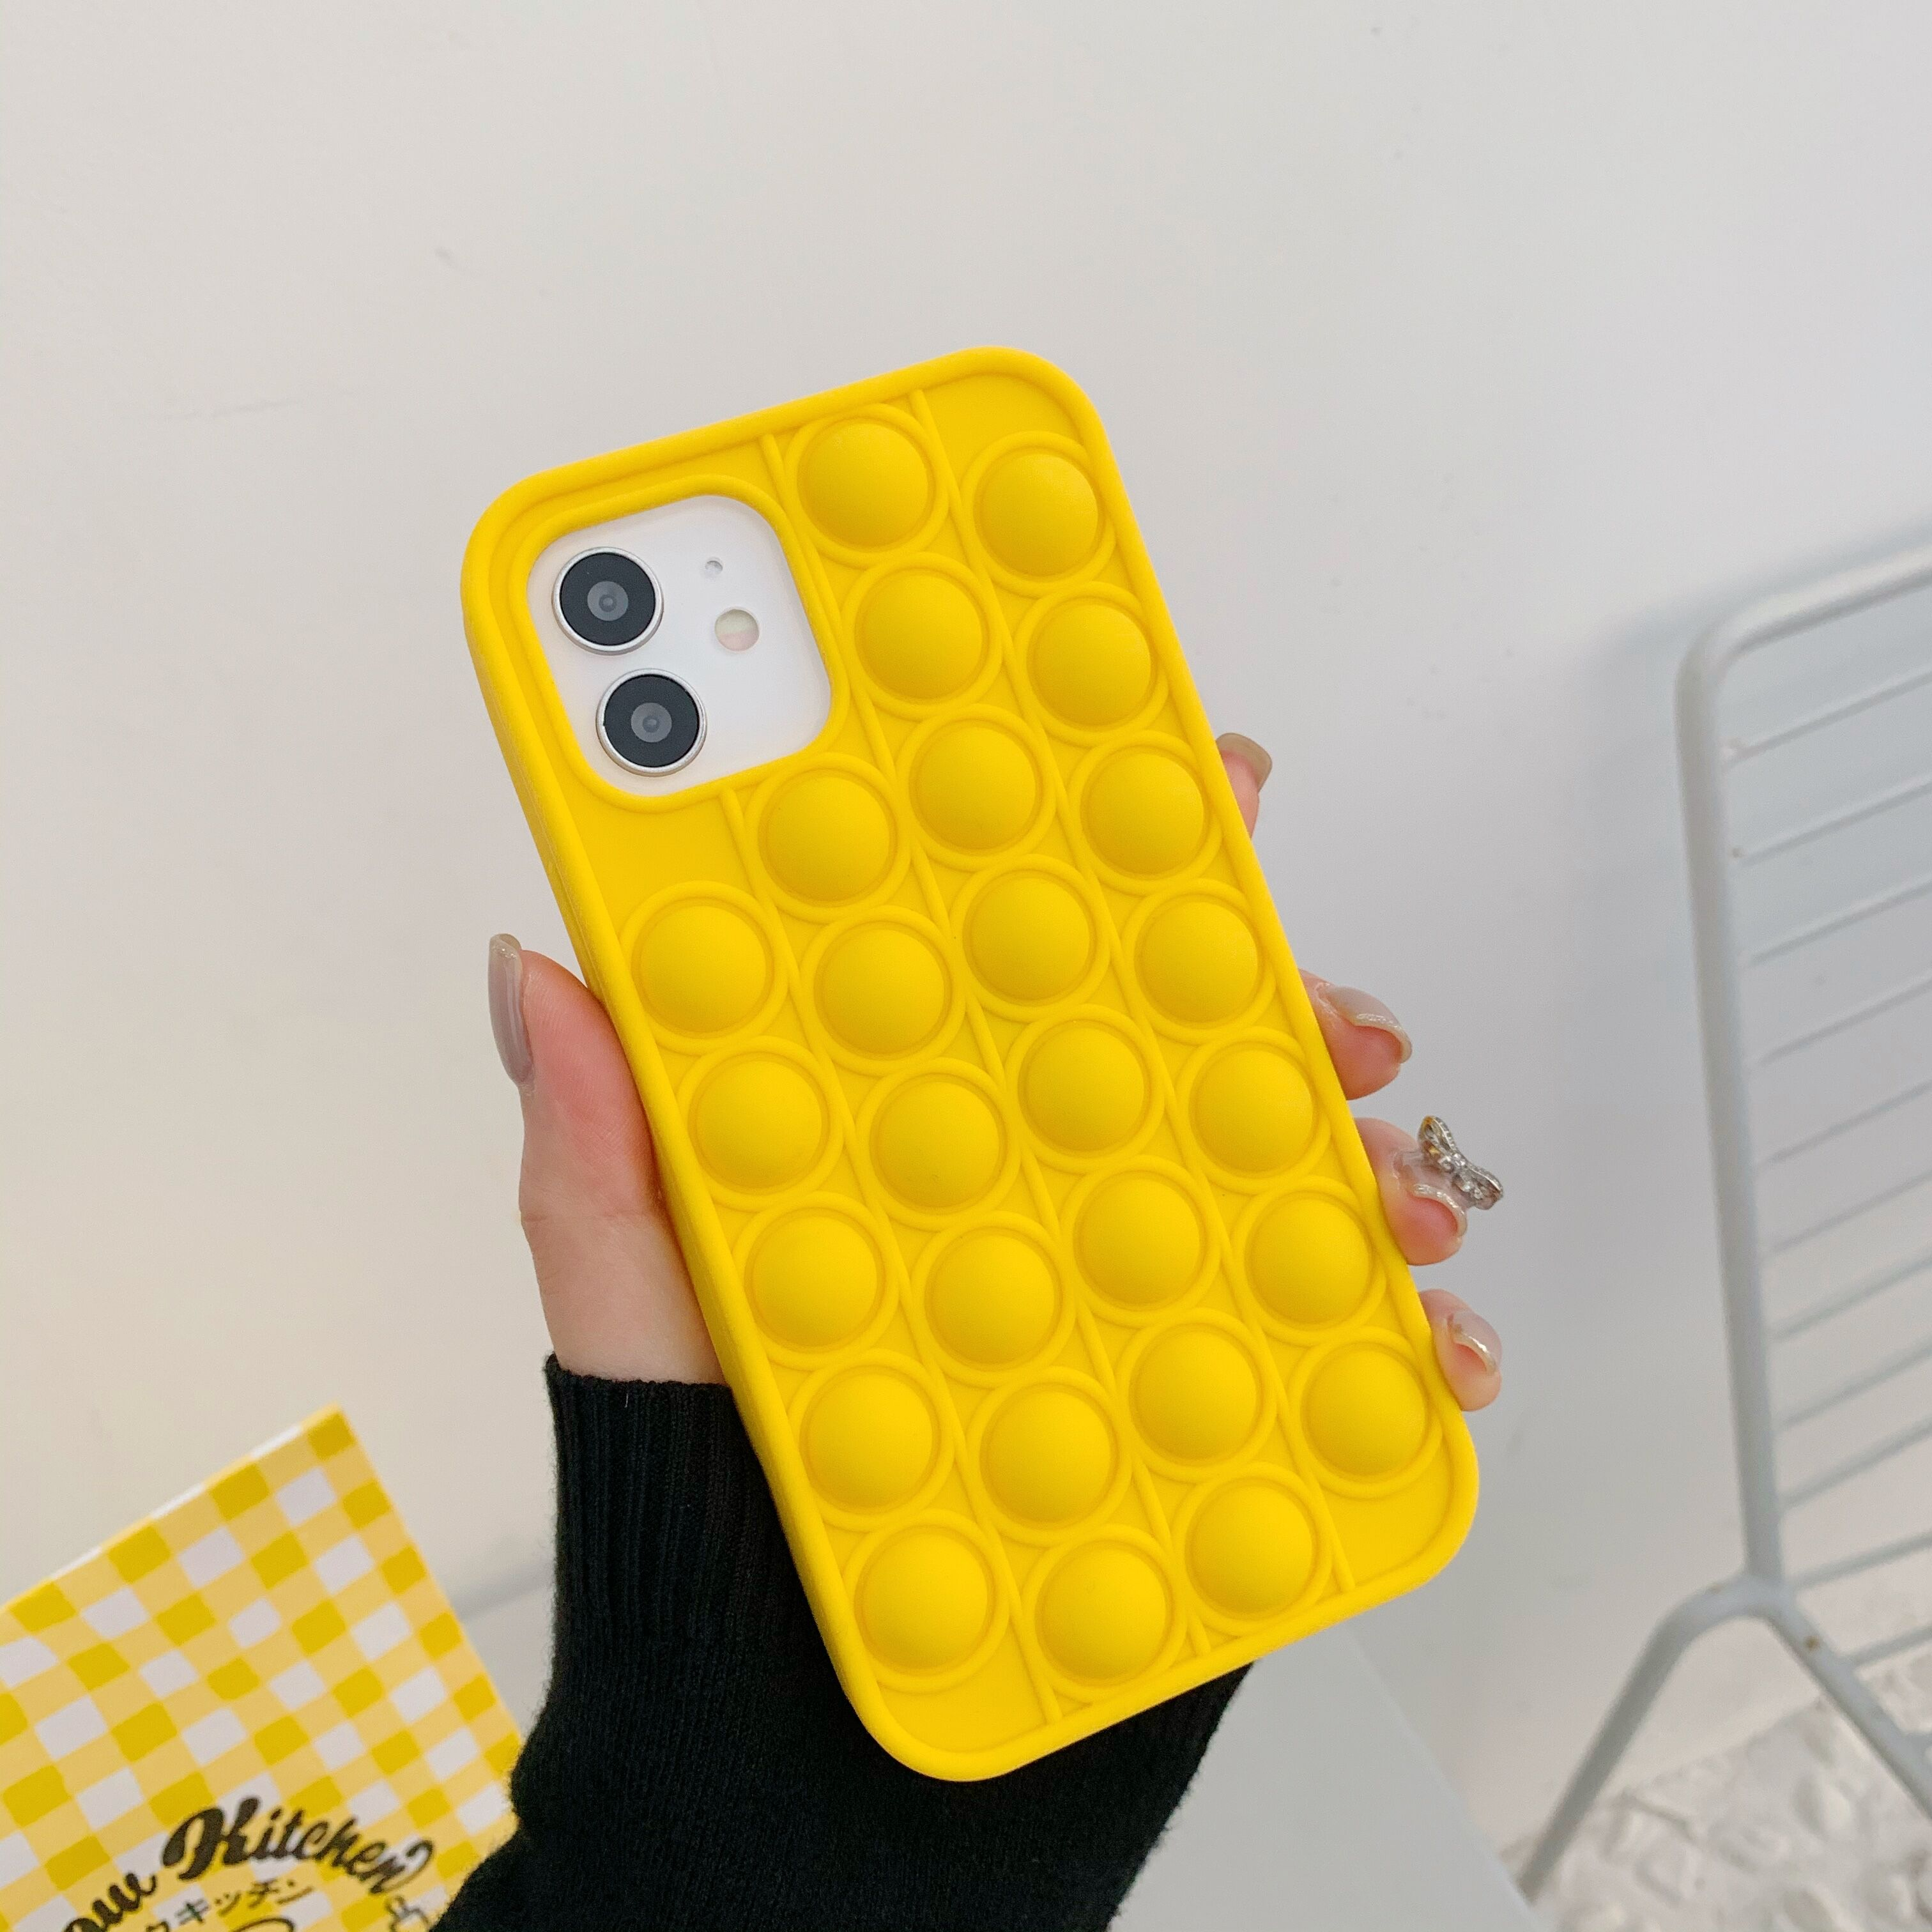 Fashion Rainbow Shockproof Silicone Phone Case For Iphone 11 12 Pro Max 6s 7 8 Plus 2 - Popping Fidgets